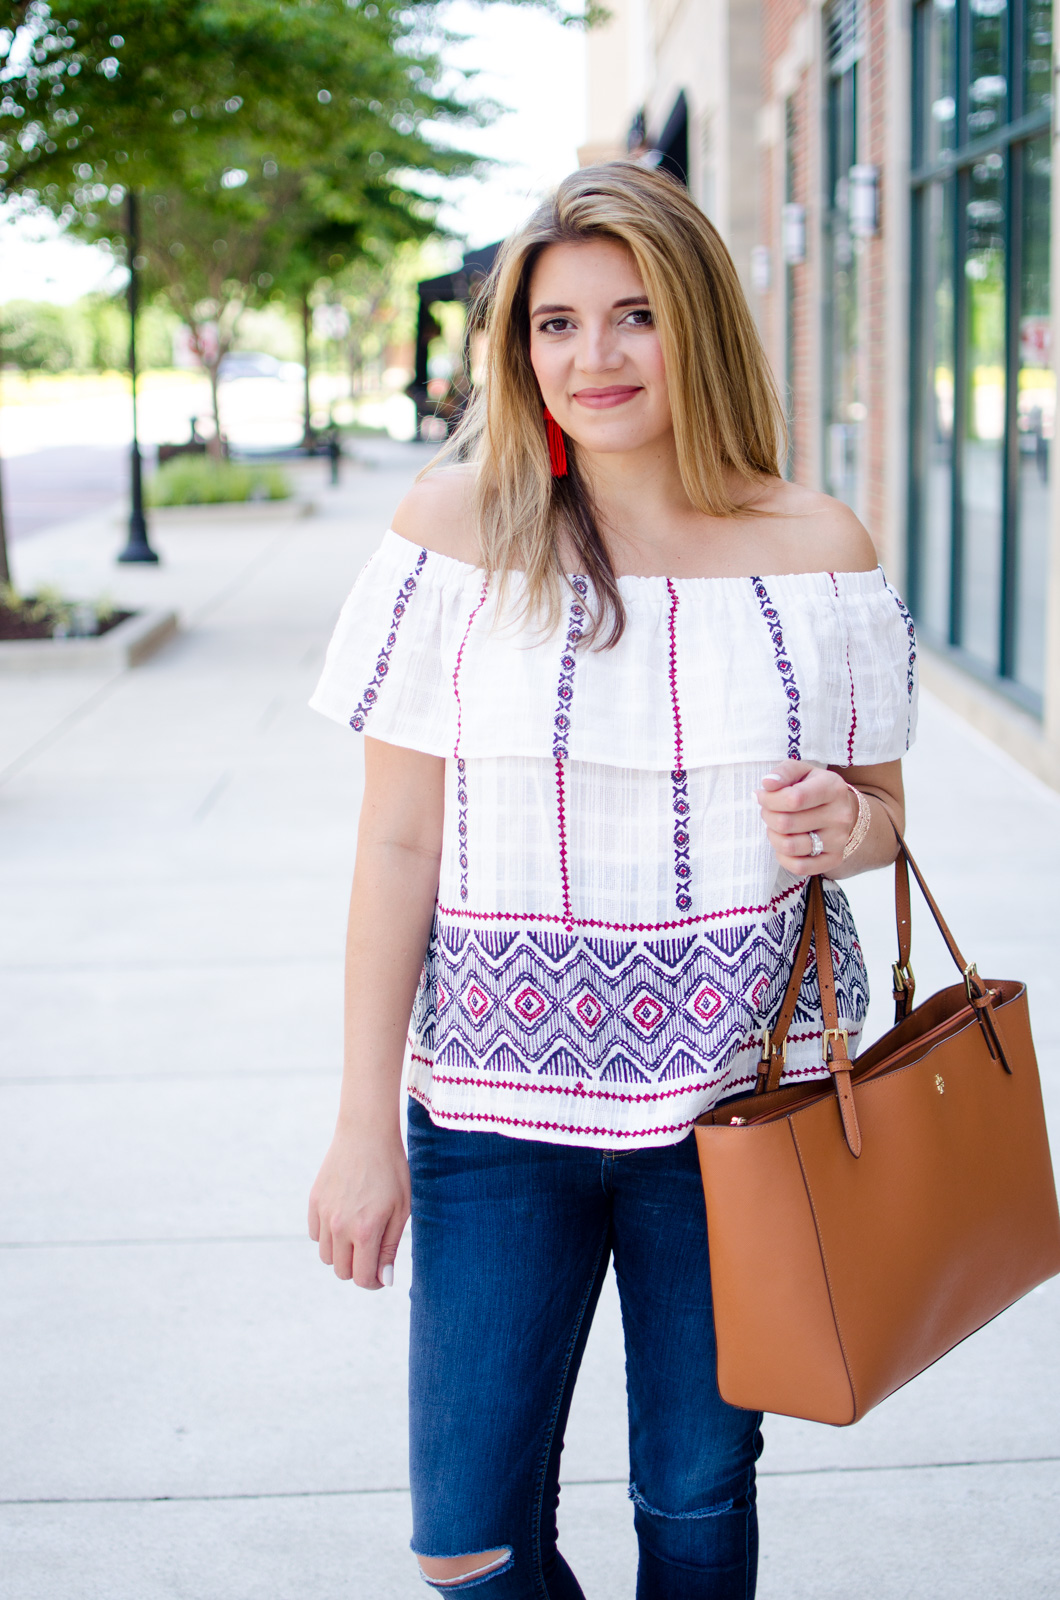 4th of july style ideas - red, white, and blue summer outfit | For more Summer outfit ideas, head to bylaurenm.com!